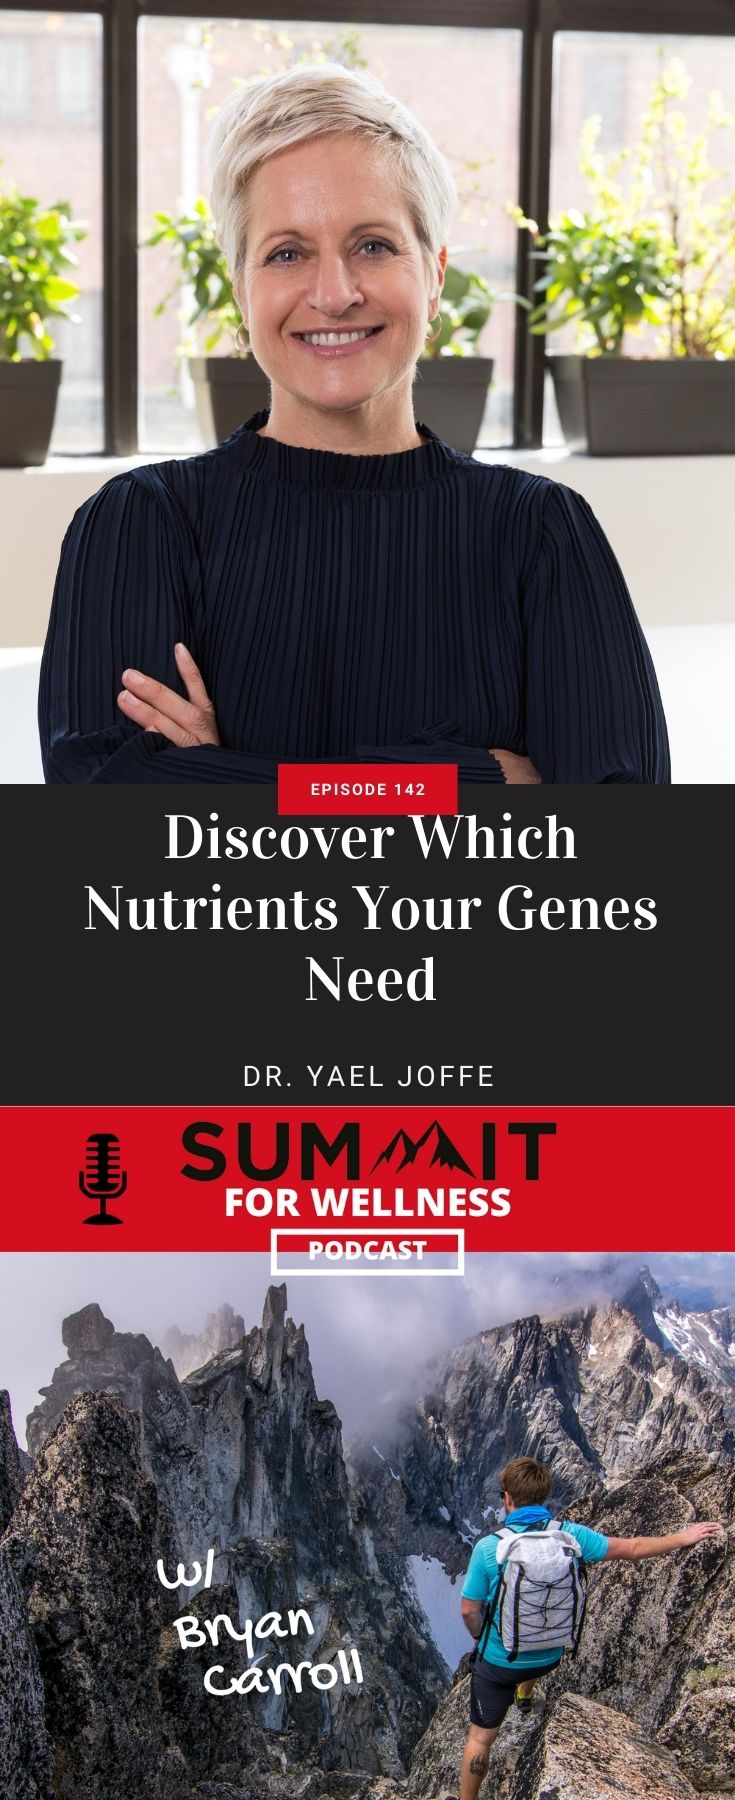 Dr. Yael Joffe teaches about genetics and nutrition